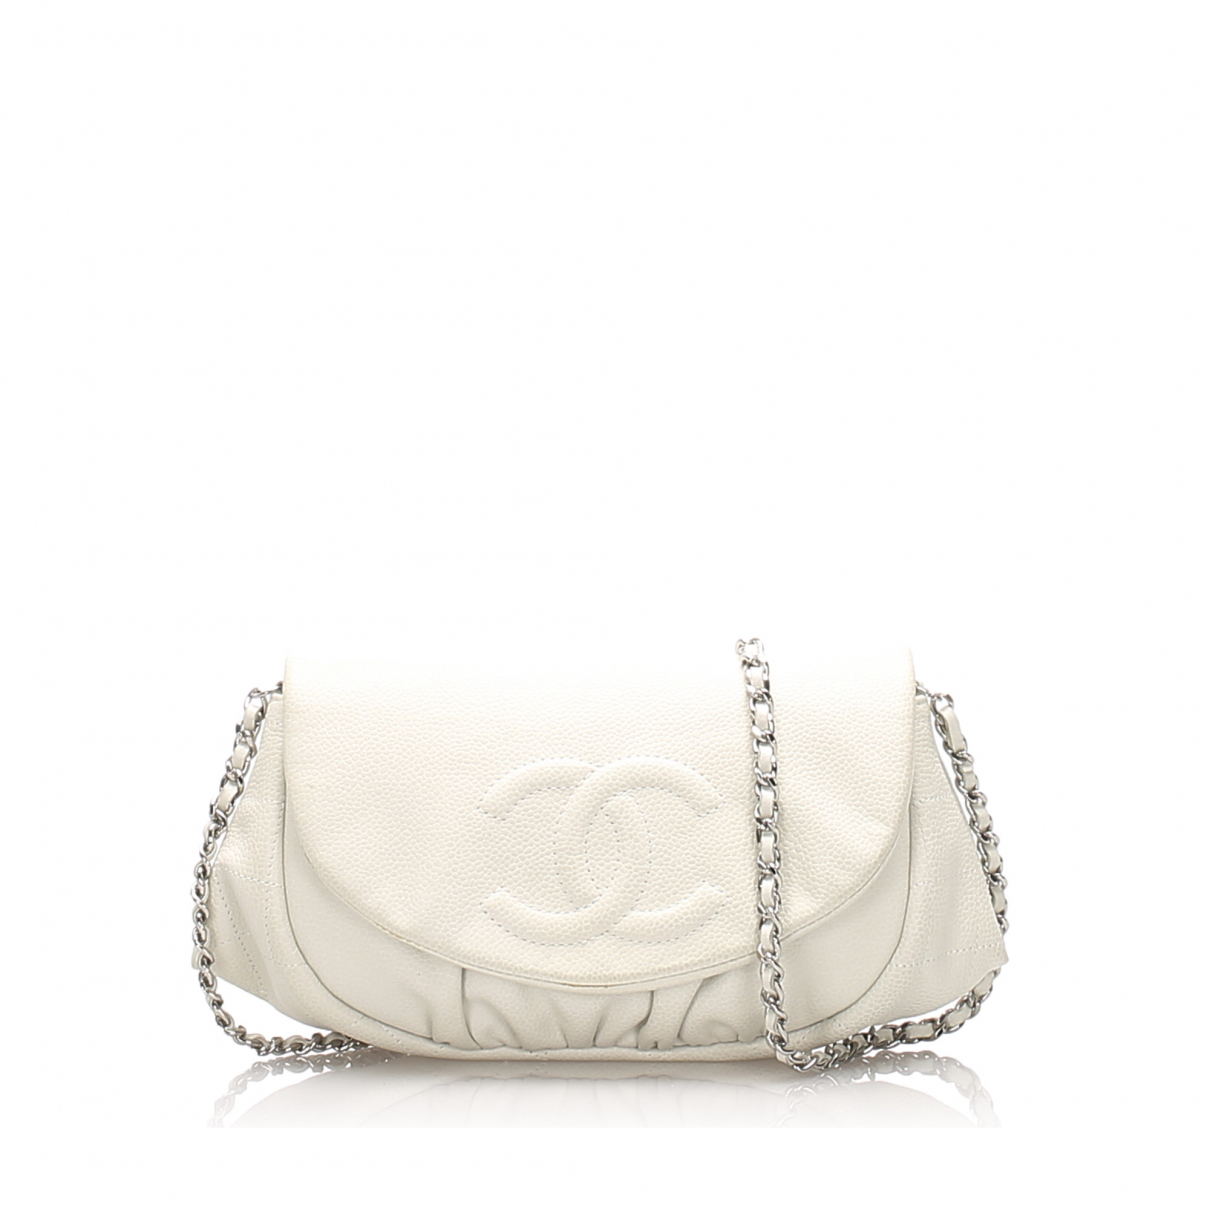 Chanel \N White Leather wallet for Women \N